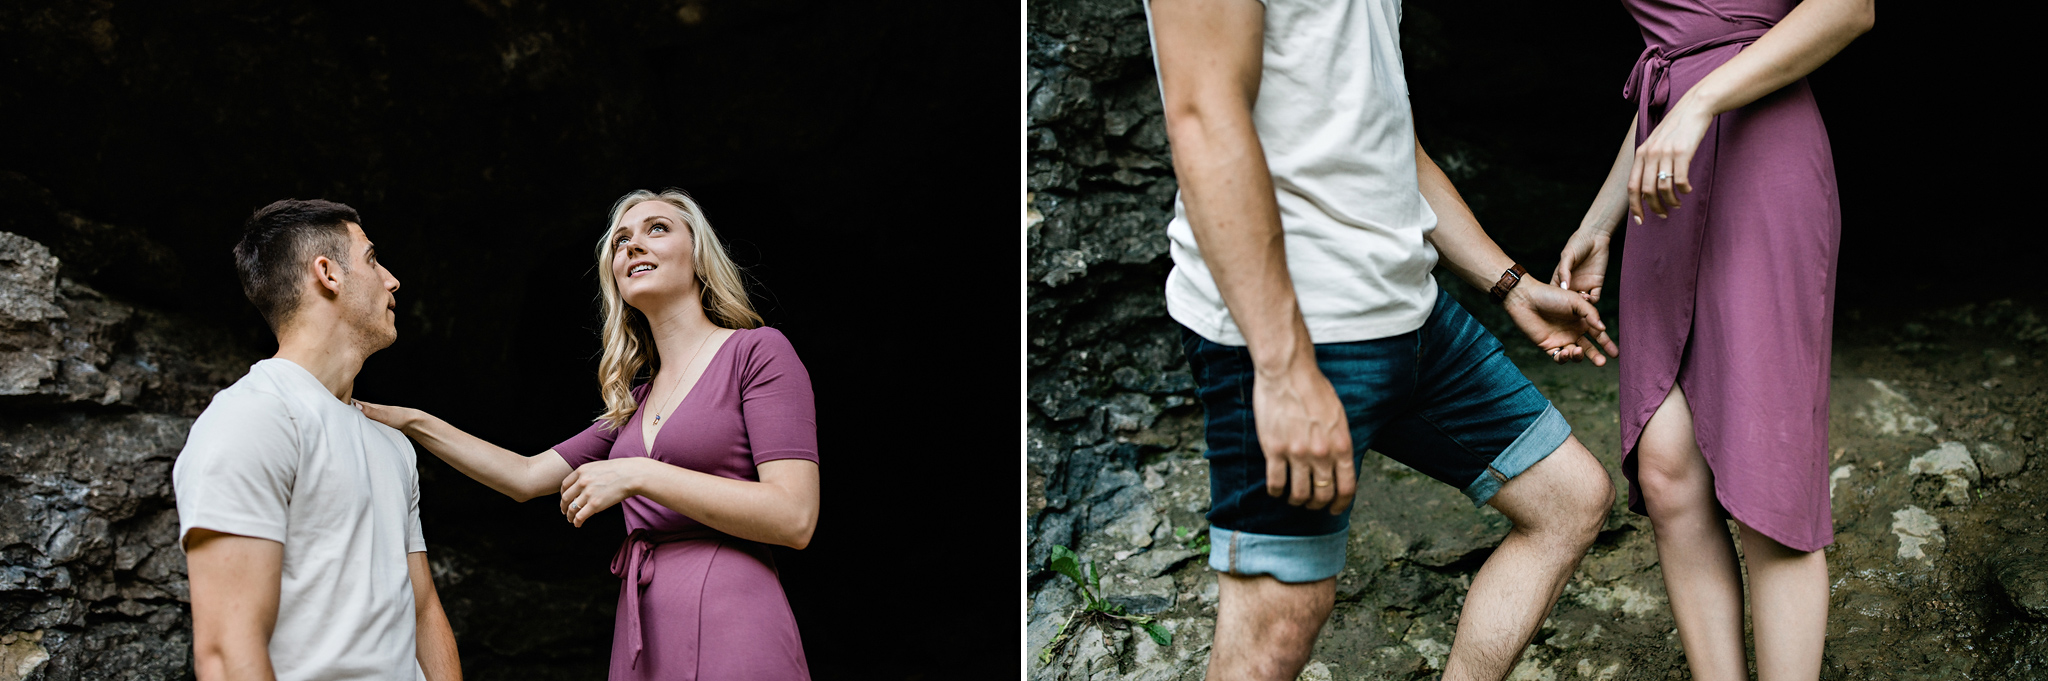 233-summer-elora-gorge-sunset-engagement-session.jpg